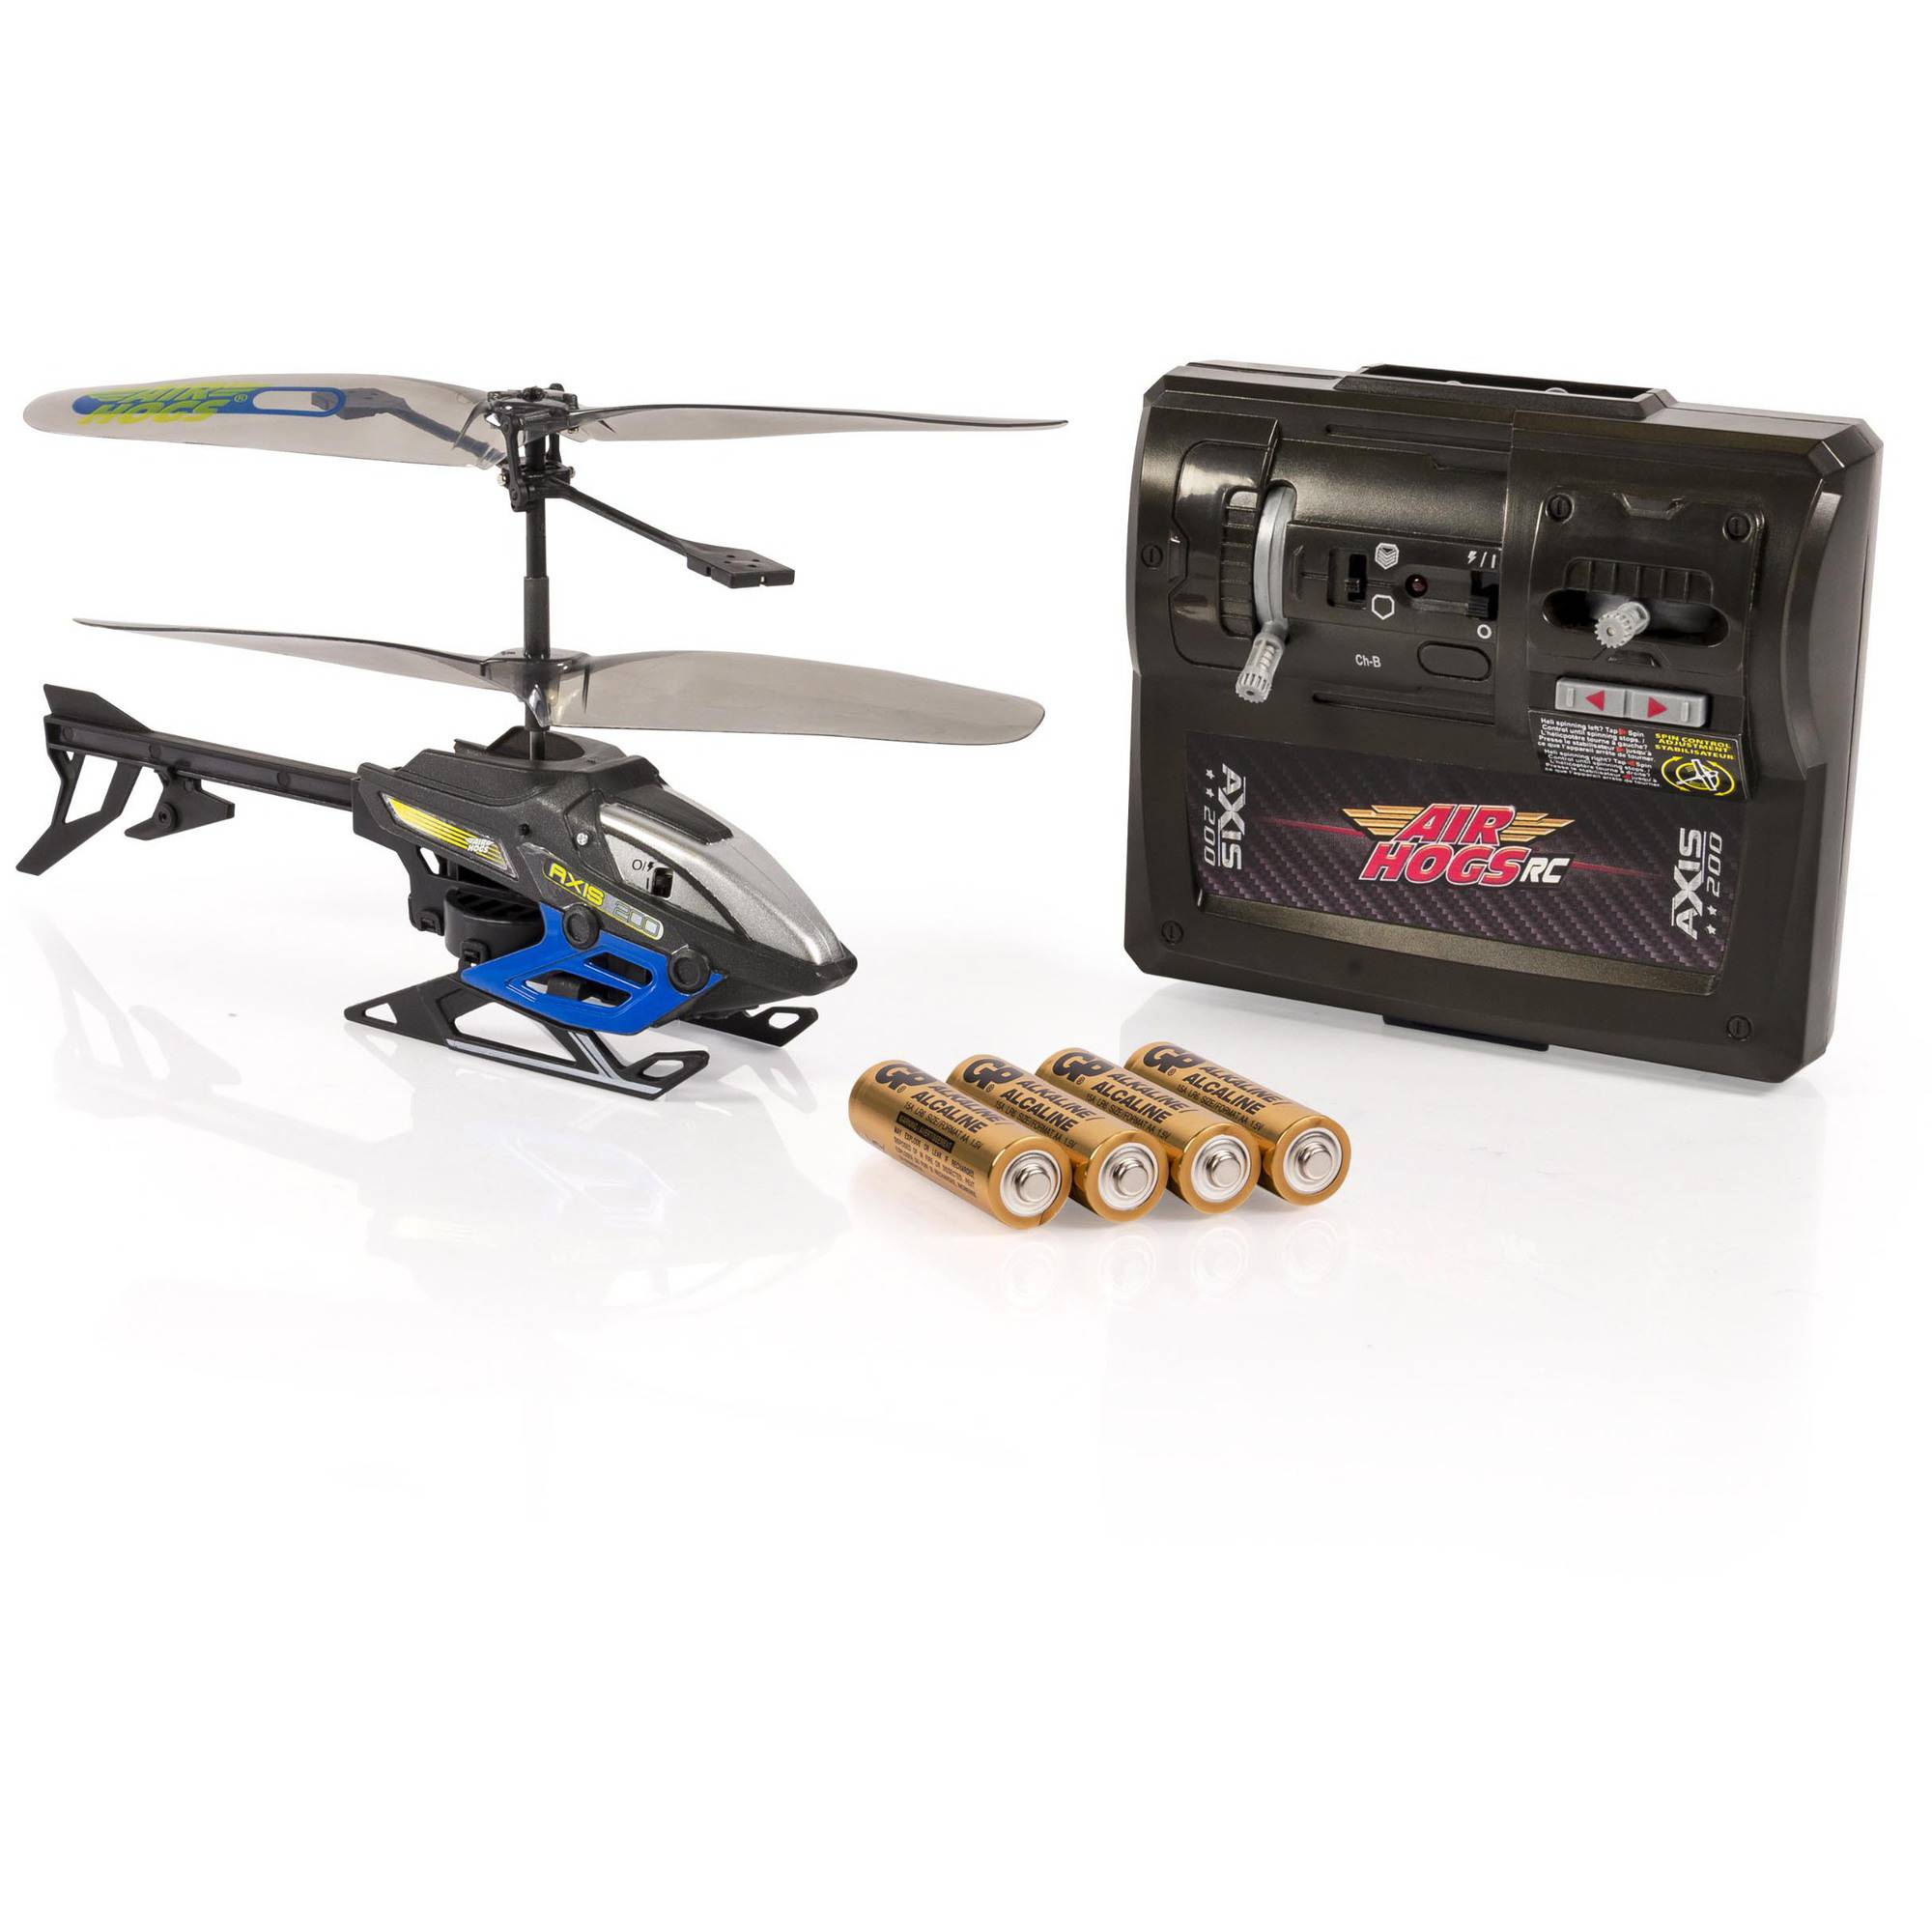 Air Hogs Axis 200 R C Helicopter with Batteries, Black by